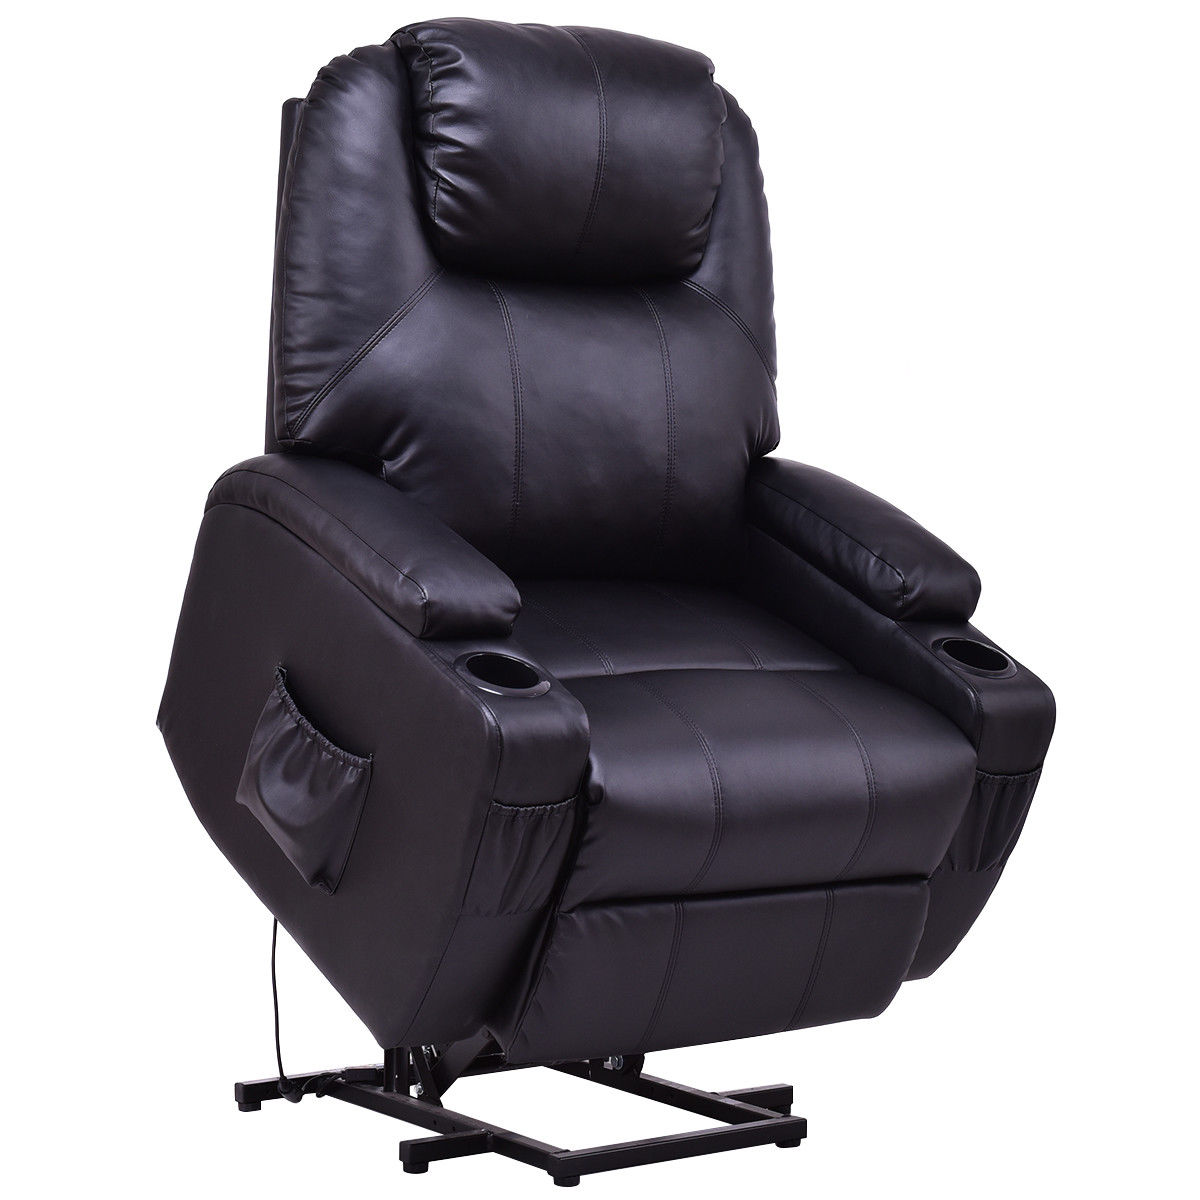 Incroyable Costway Electric Power Lift Chair Recliner PU Leather Padded Seat W/ Remote  U0026 Cup Holder